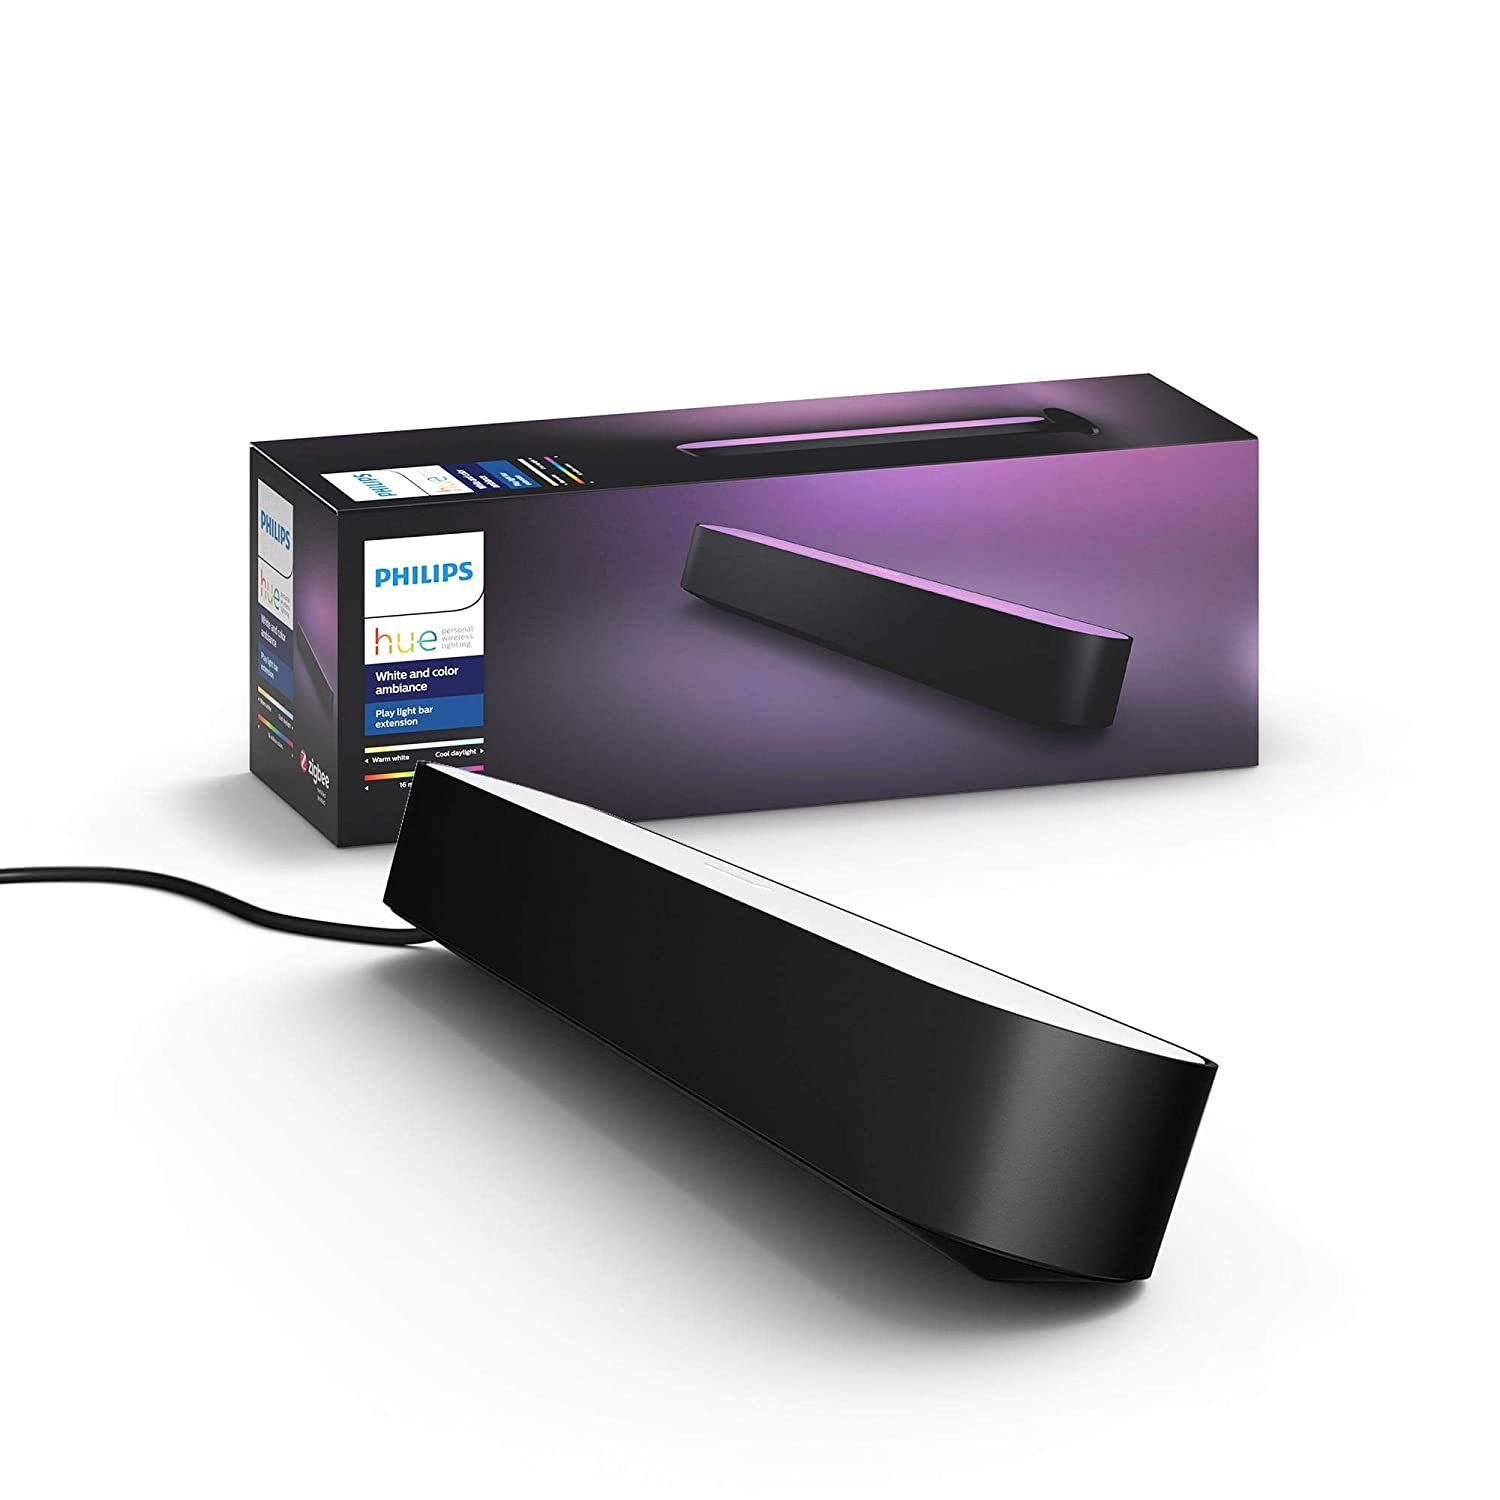 Philips - Hue Play White & Color Ambiance Smart LED Bar Light - Black (Single Pack)